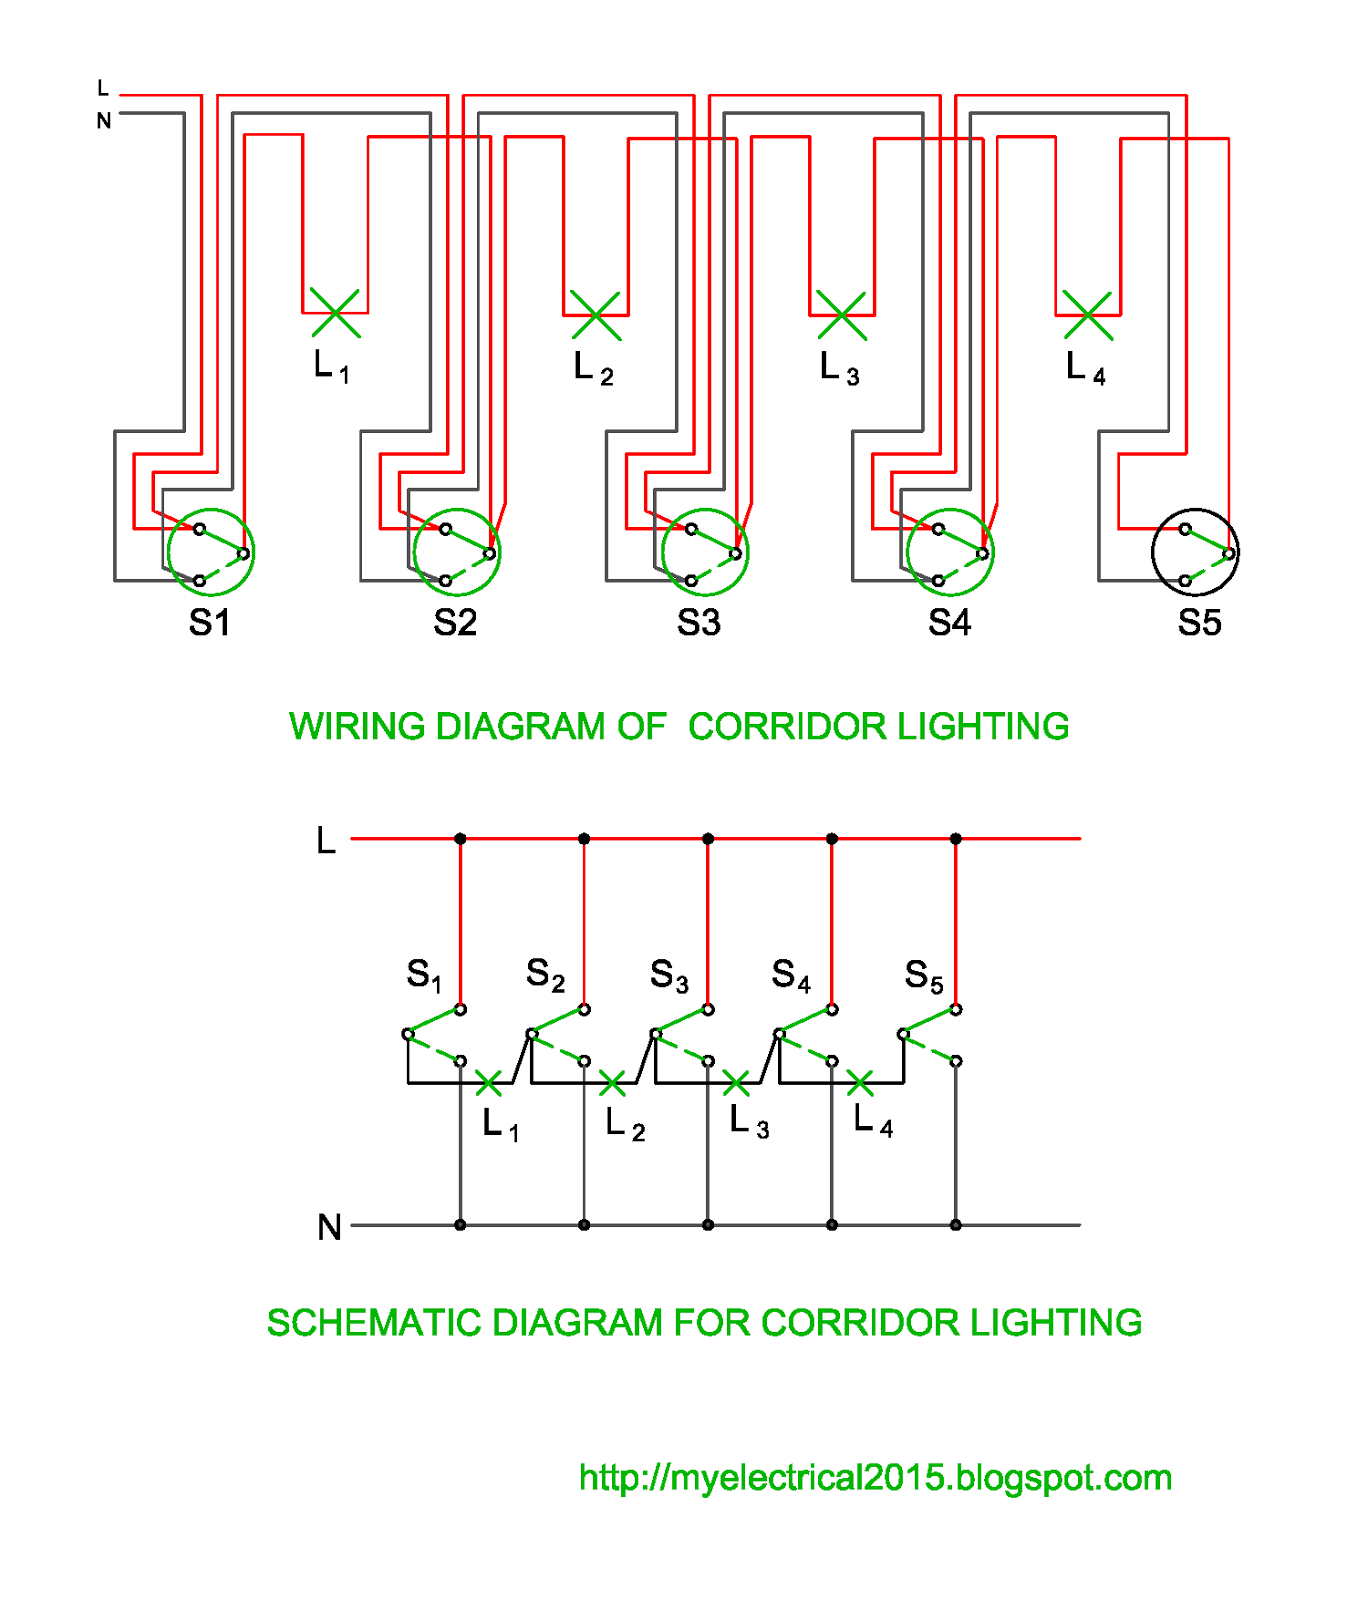 medium resolution of wiring and schematic diagram of corridor lighting